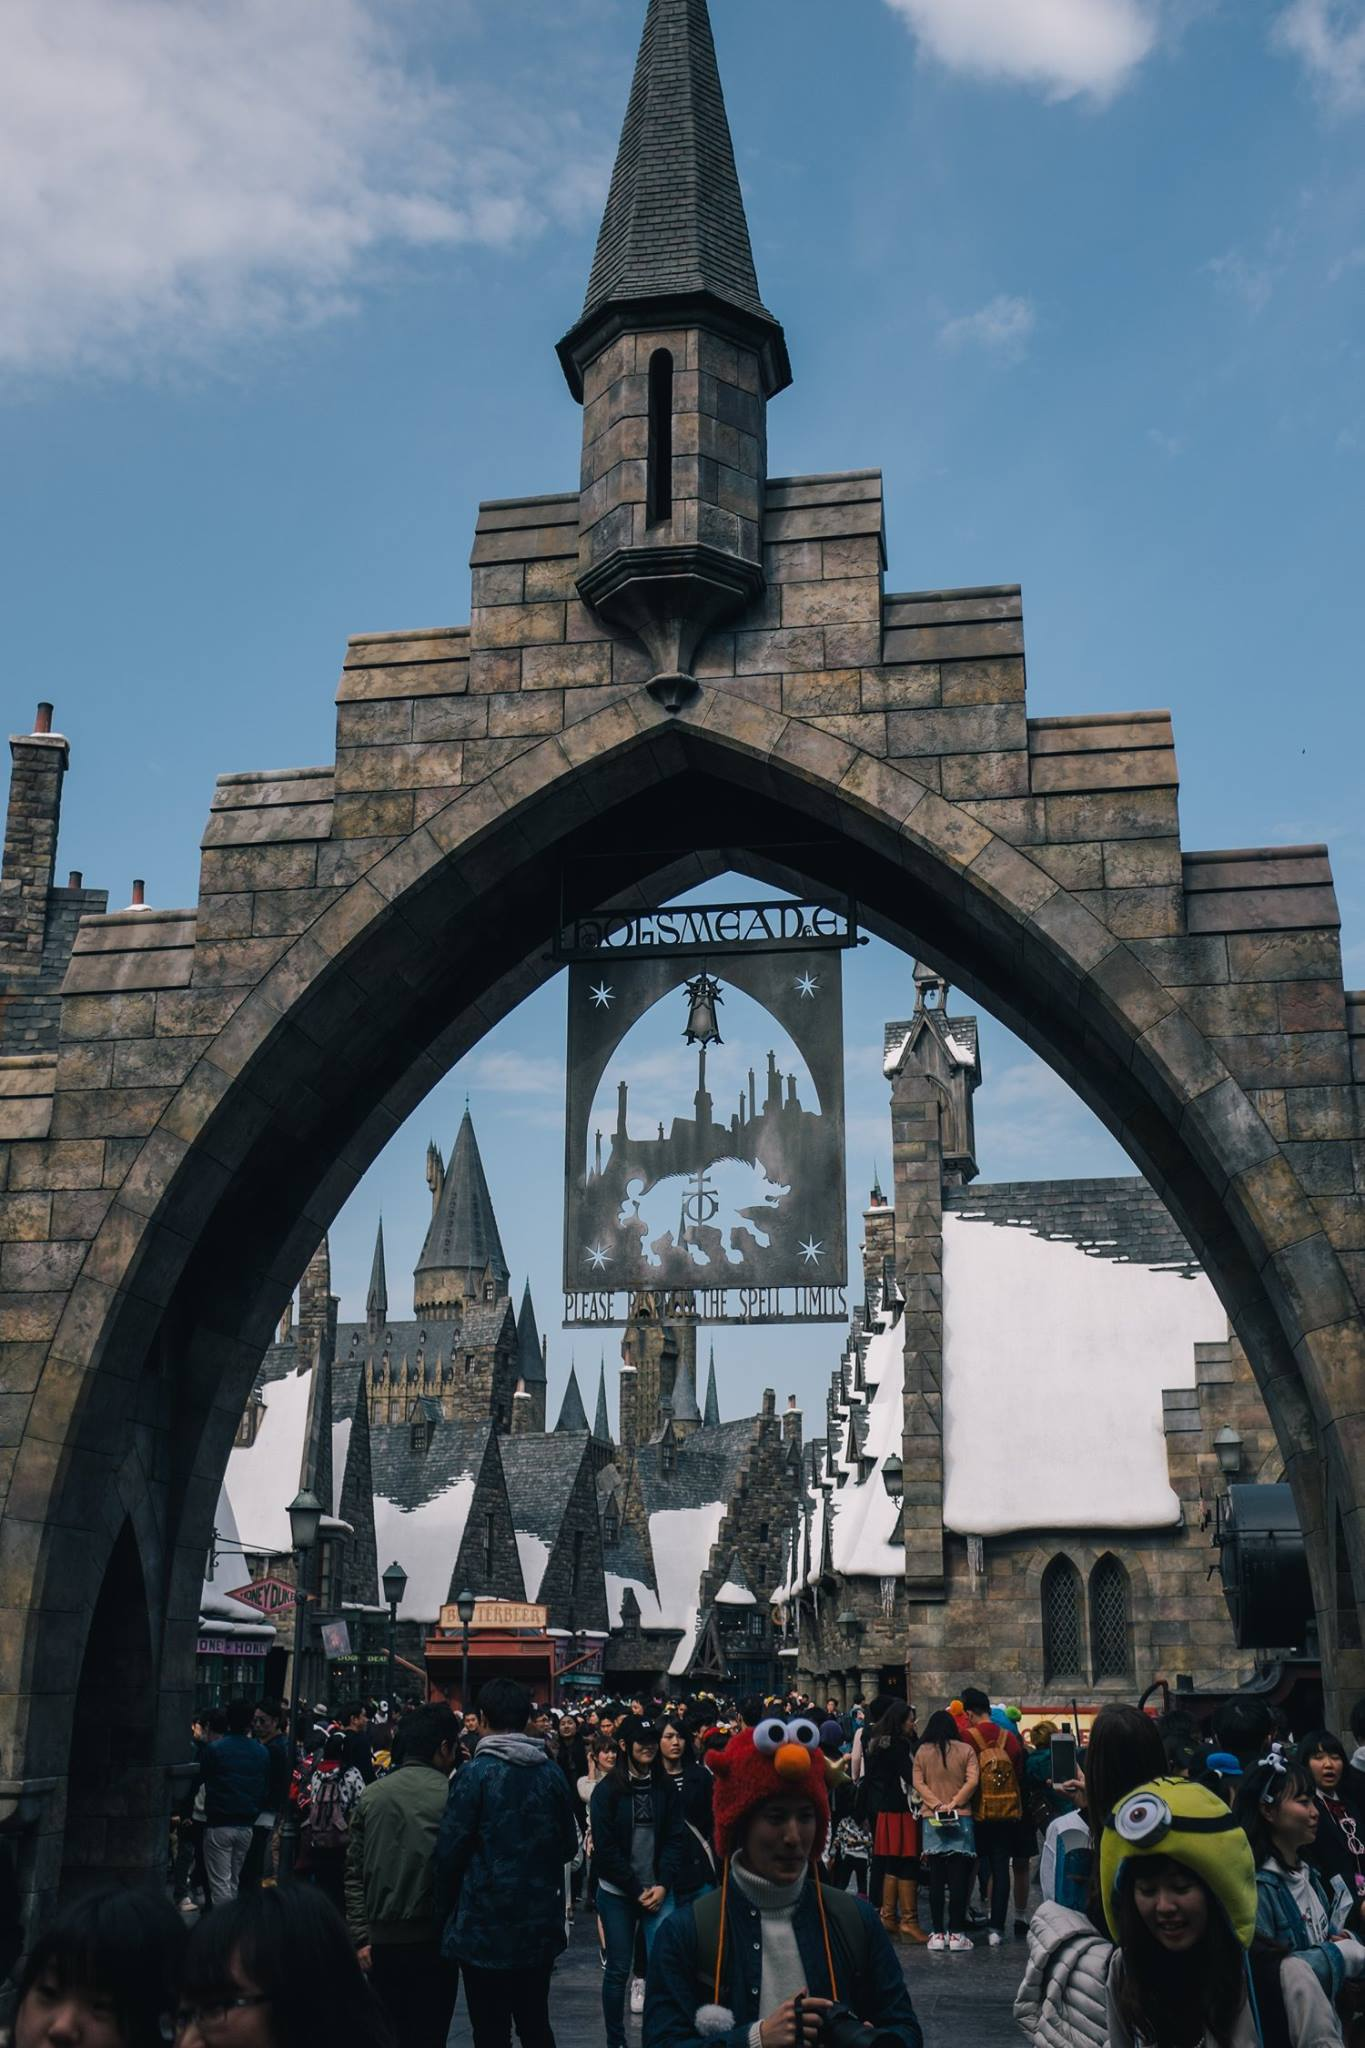 wizarding world of harry potter_maren-hald-bjorgum-9